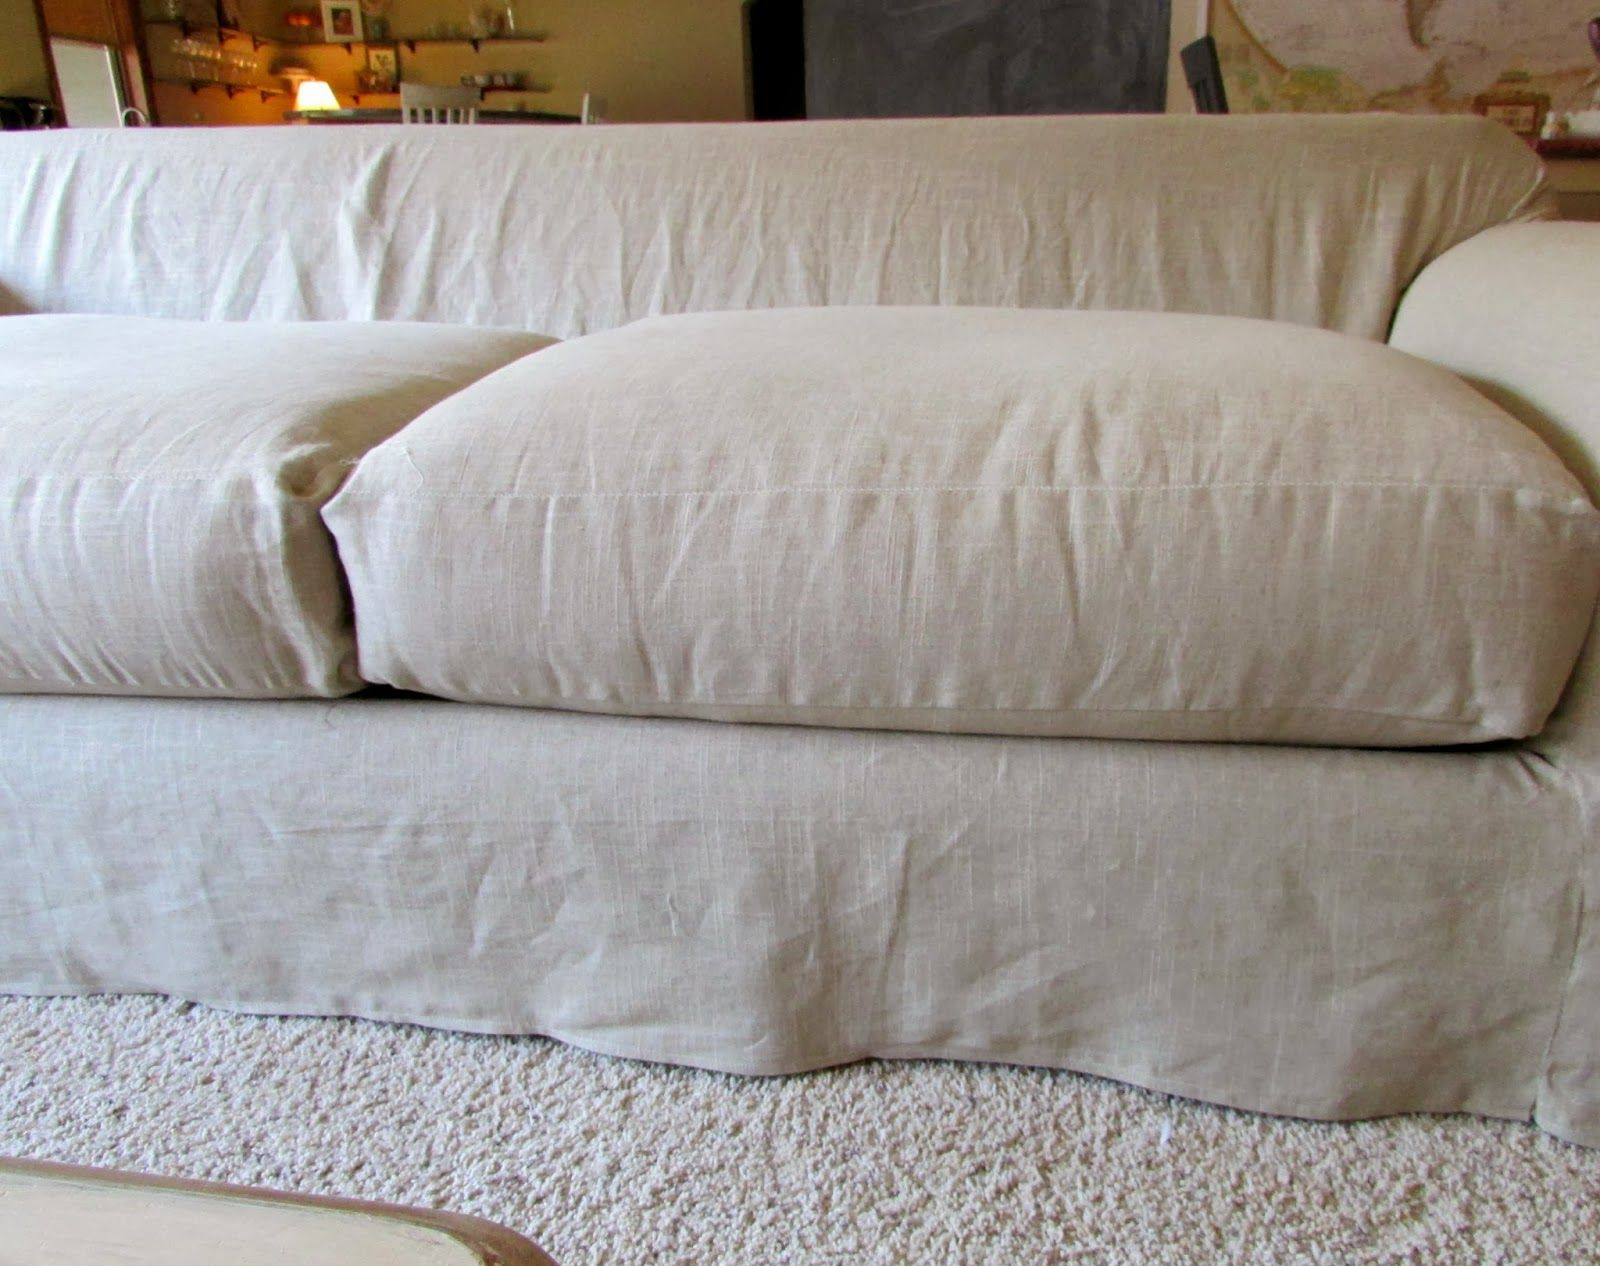 Linen Slipcovered Couch Tutorial Slipcovers Linen Couch Couch